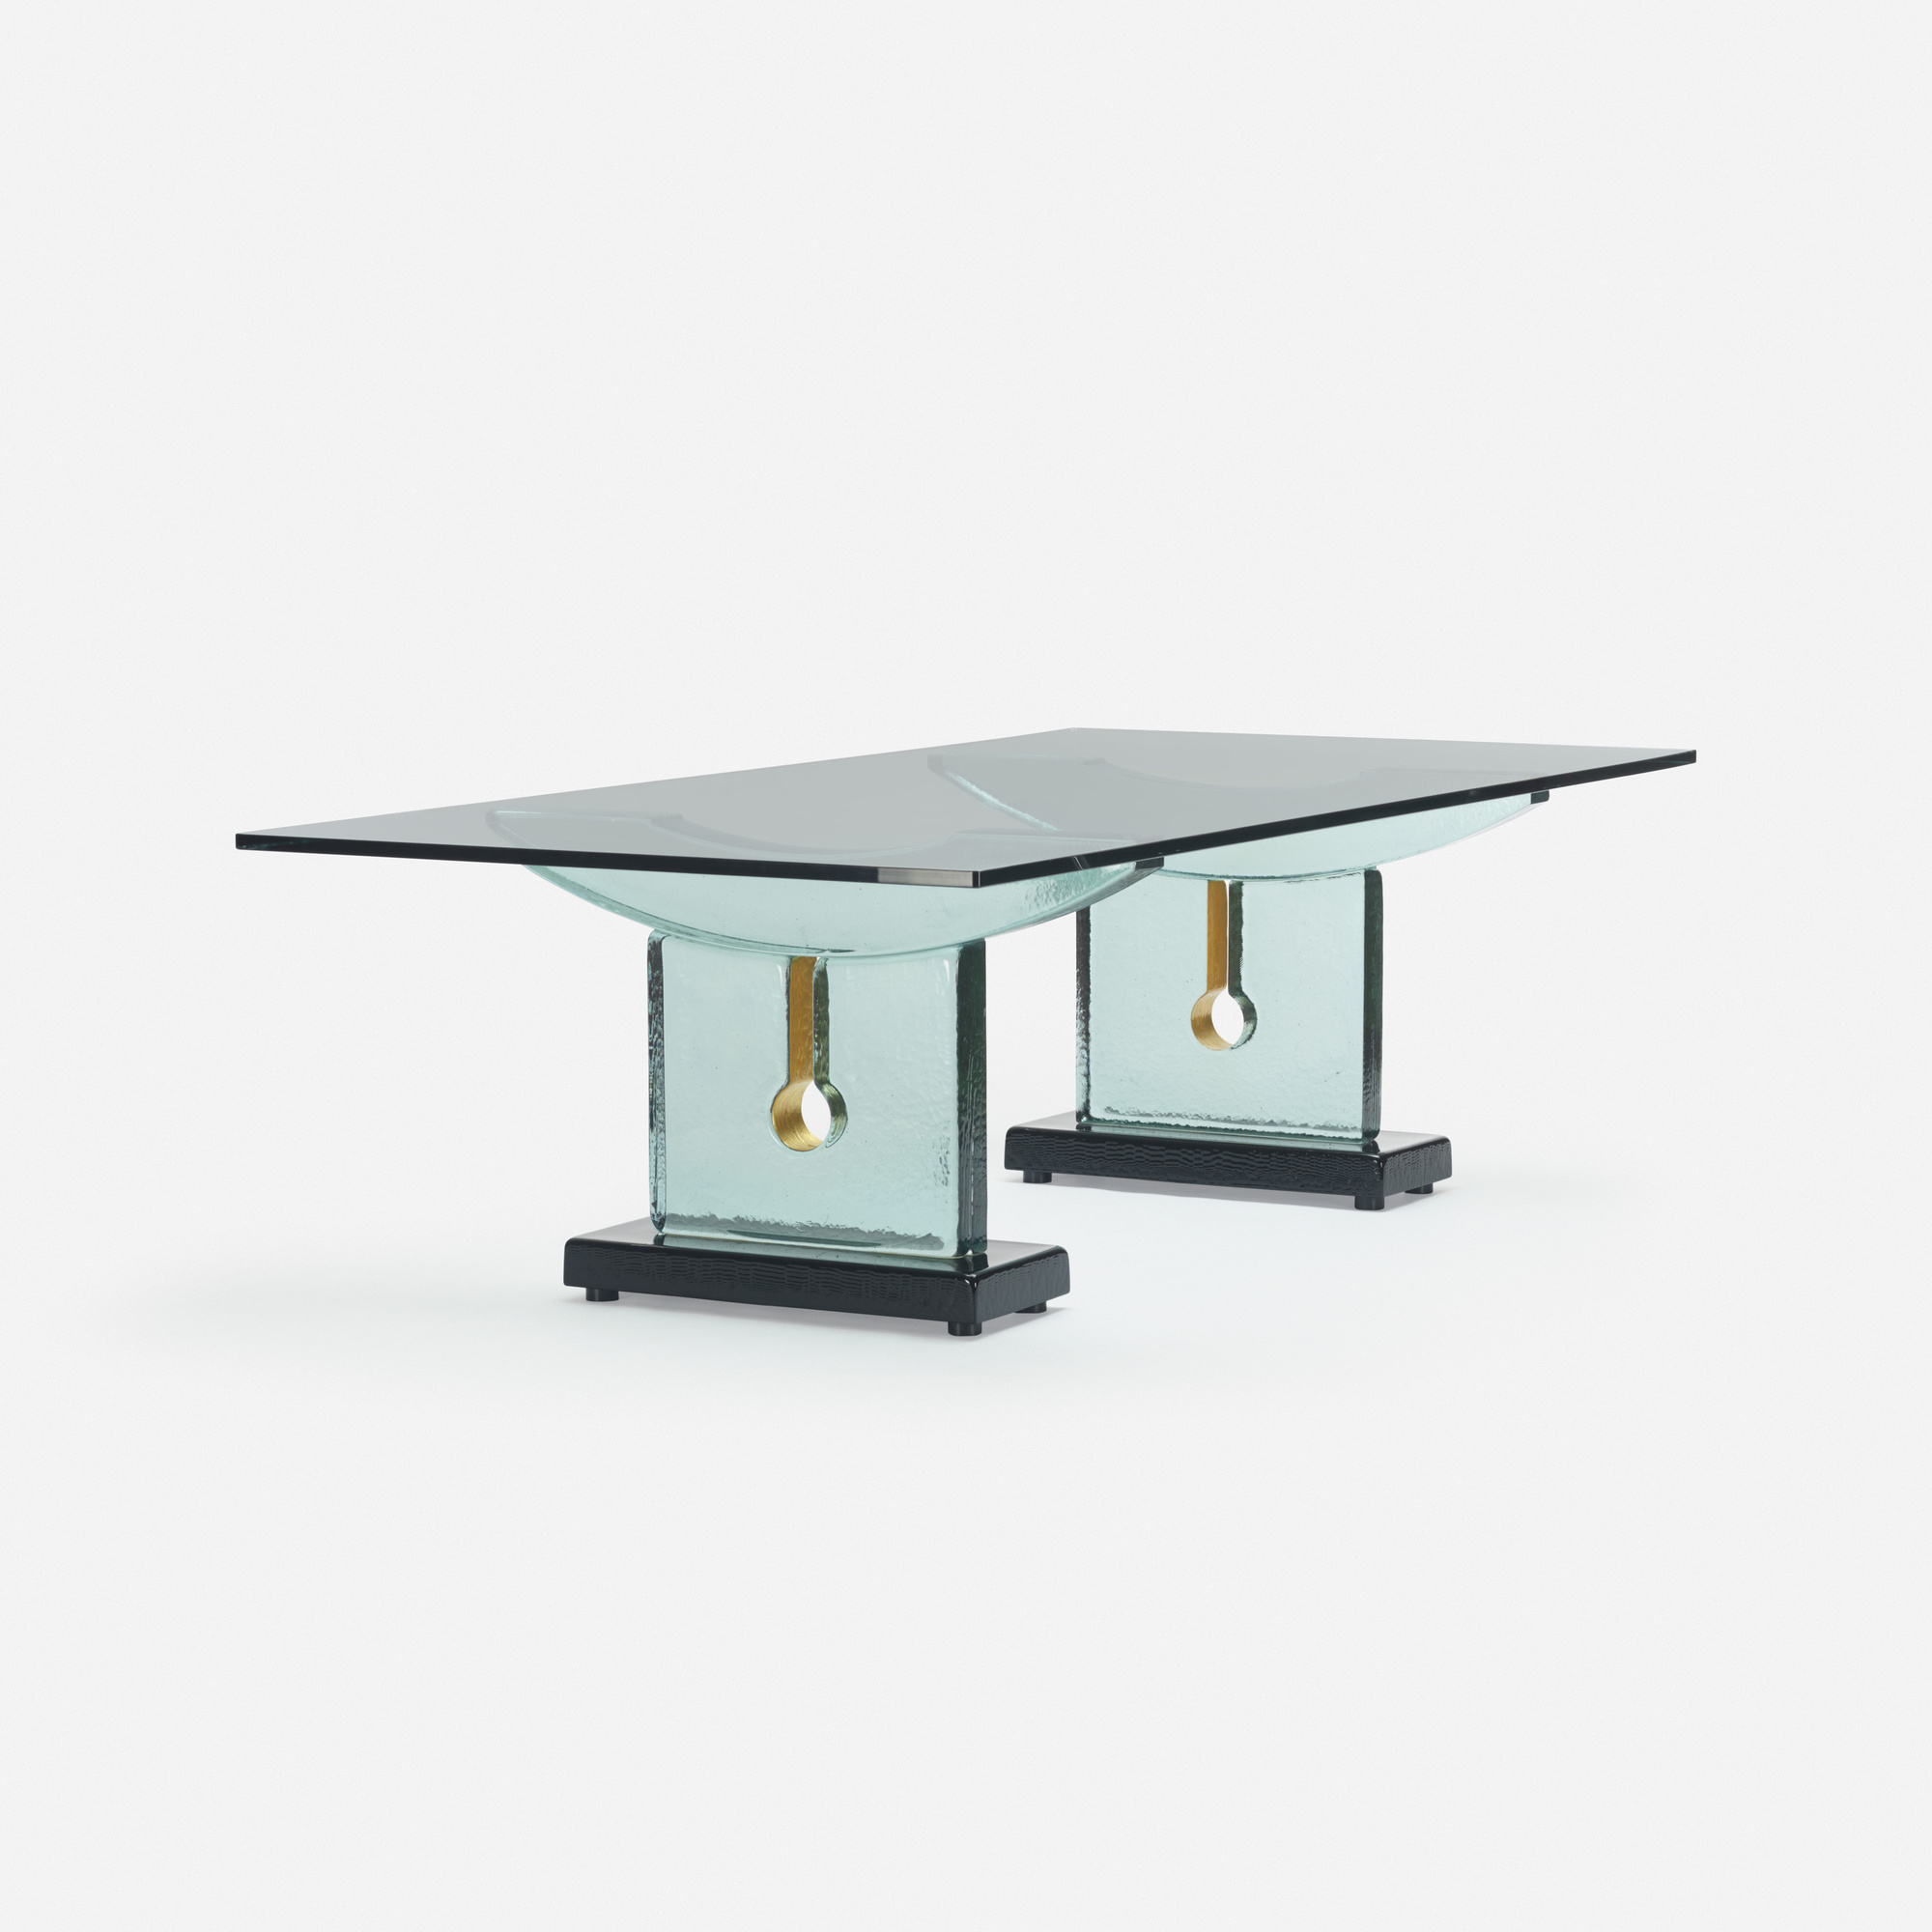 426: John Lewis / dining table (1 of 3)